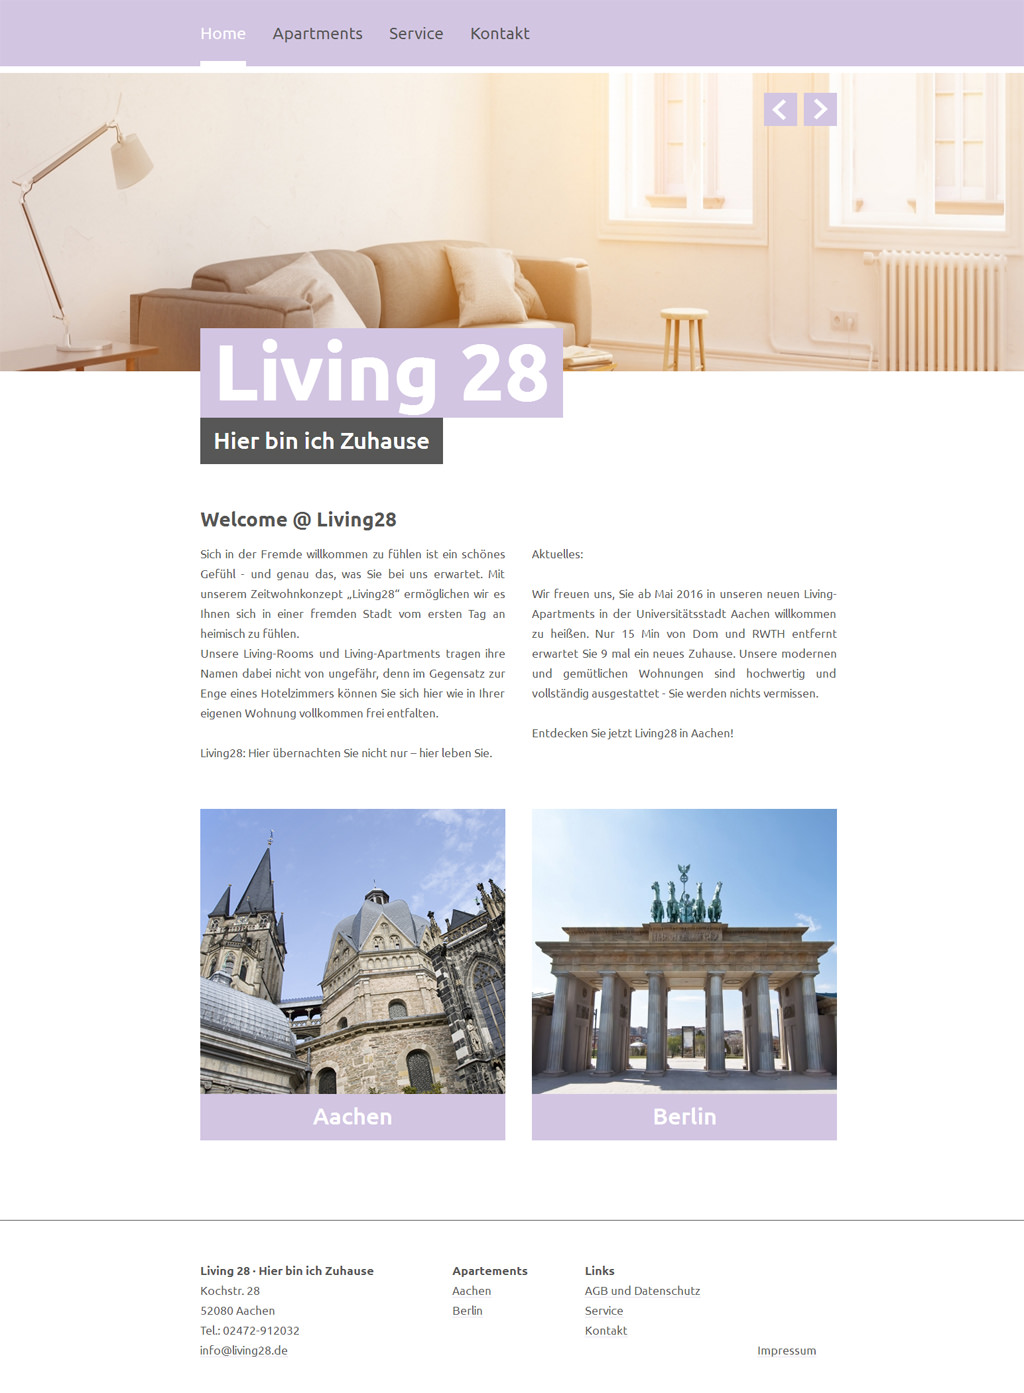 Aachen webdesign bachmann design werbeagentur aachen for Apartment web design